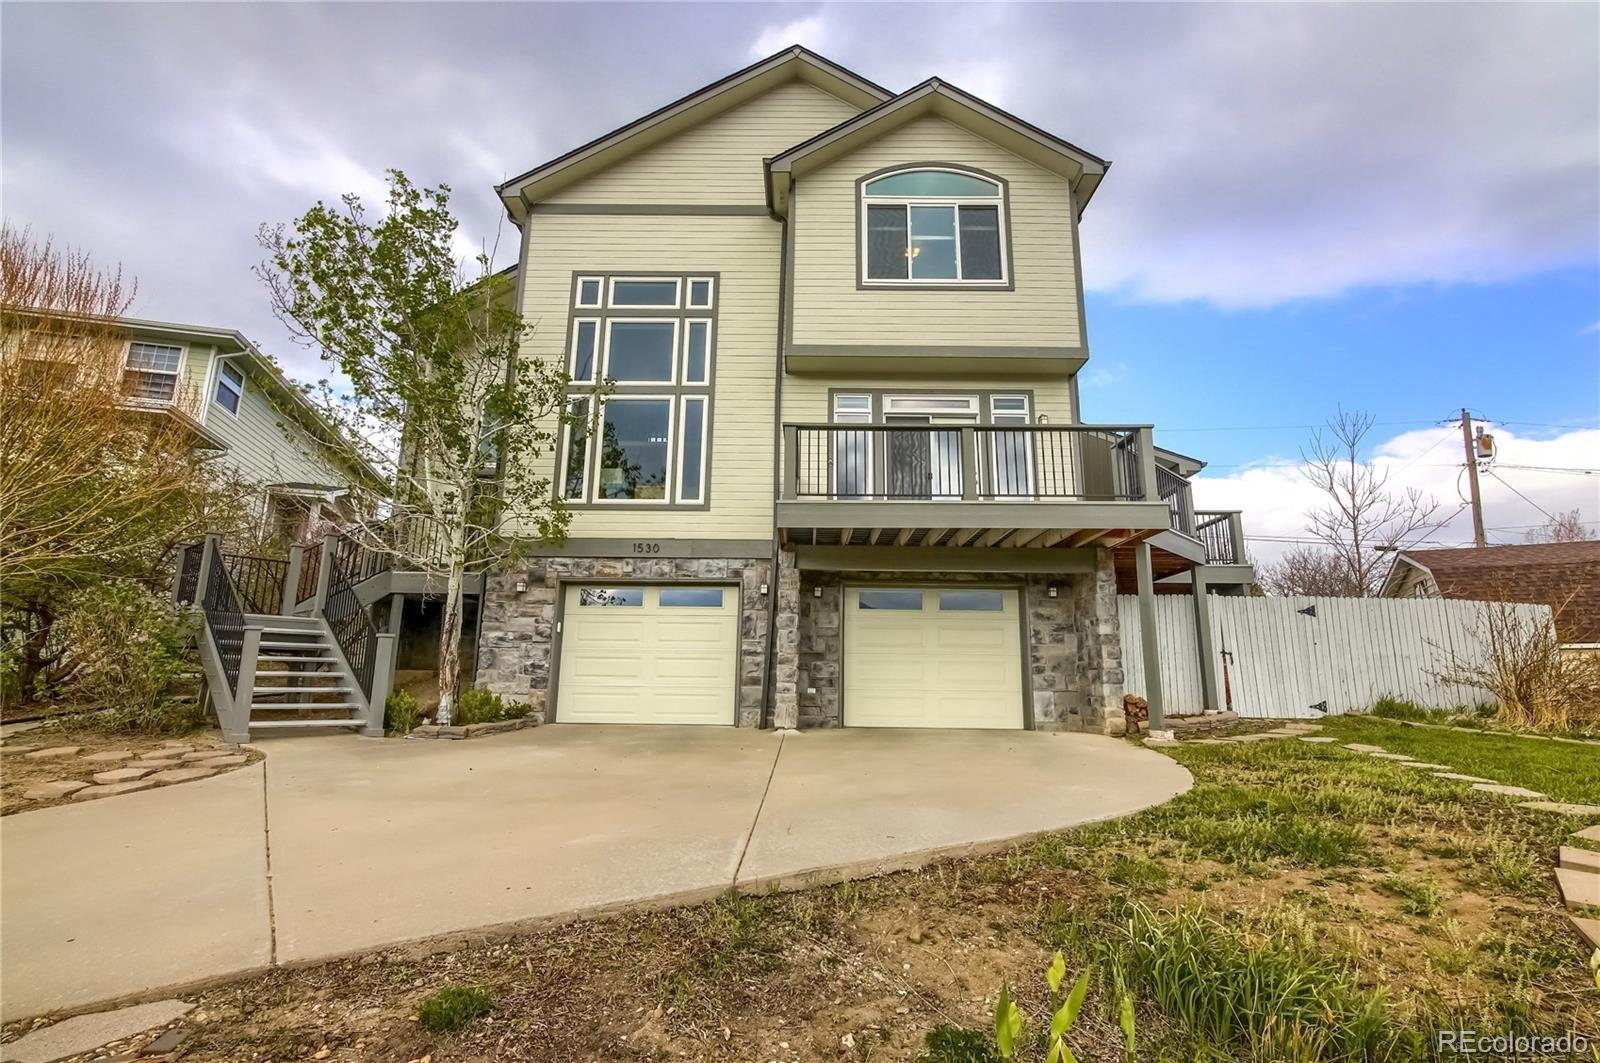 1530 Salvia Court, Golden, CO 80401 - #: 5942739